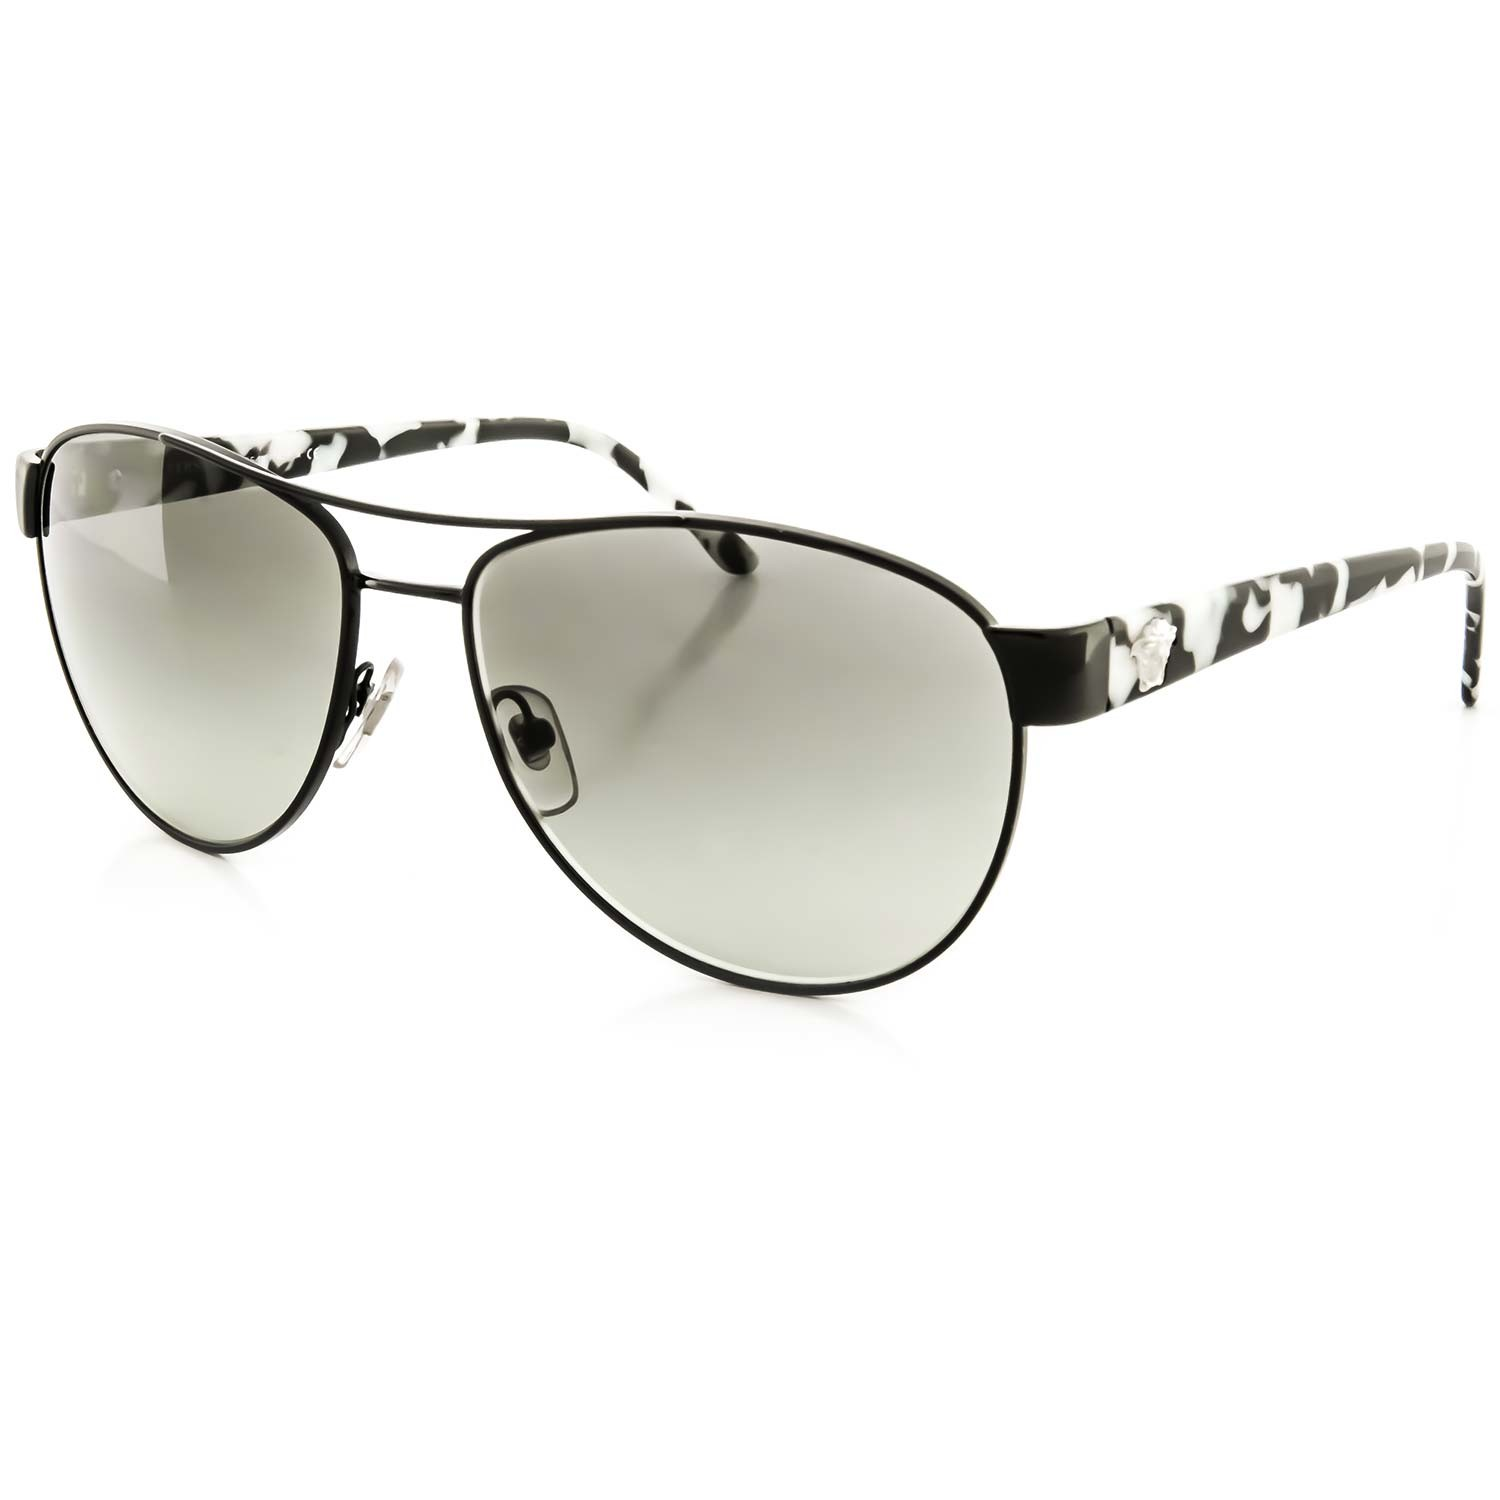 3cff7cd12a7cd Versace Sunglasses    Black + Gray Gradient - Designer .